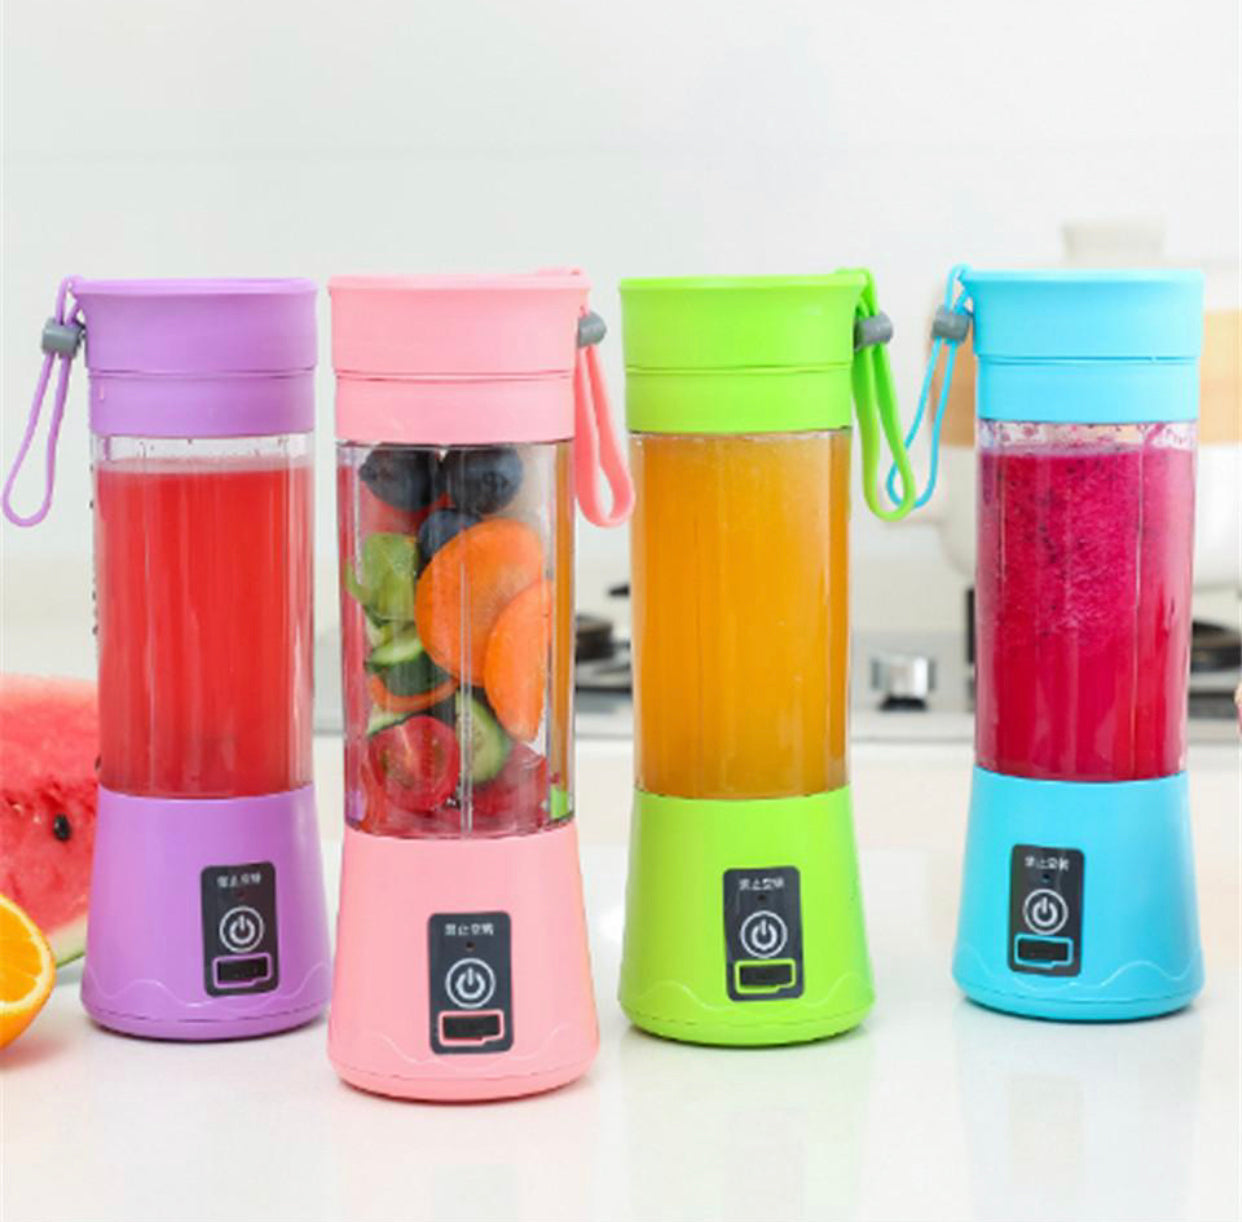 Portable USB Juicer Cup Handheld Rechargeable Fruit Maker Blender 380 ML